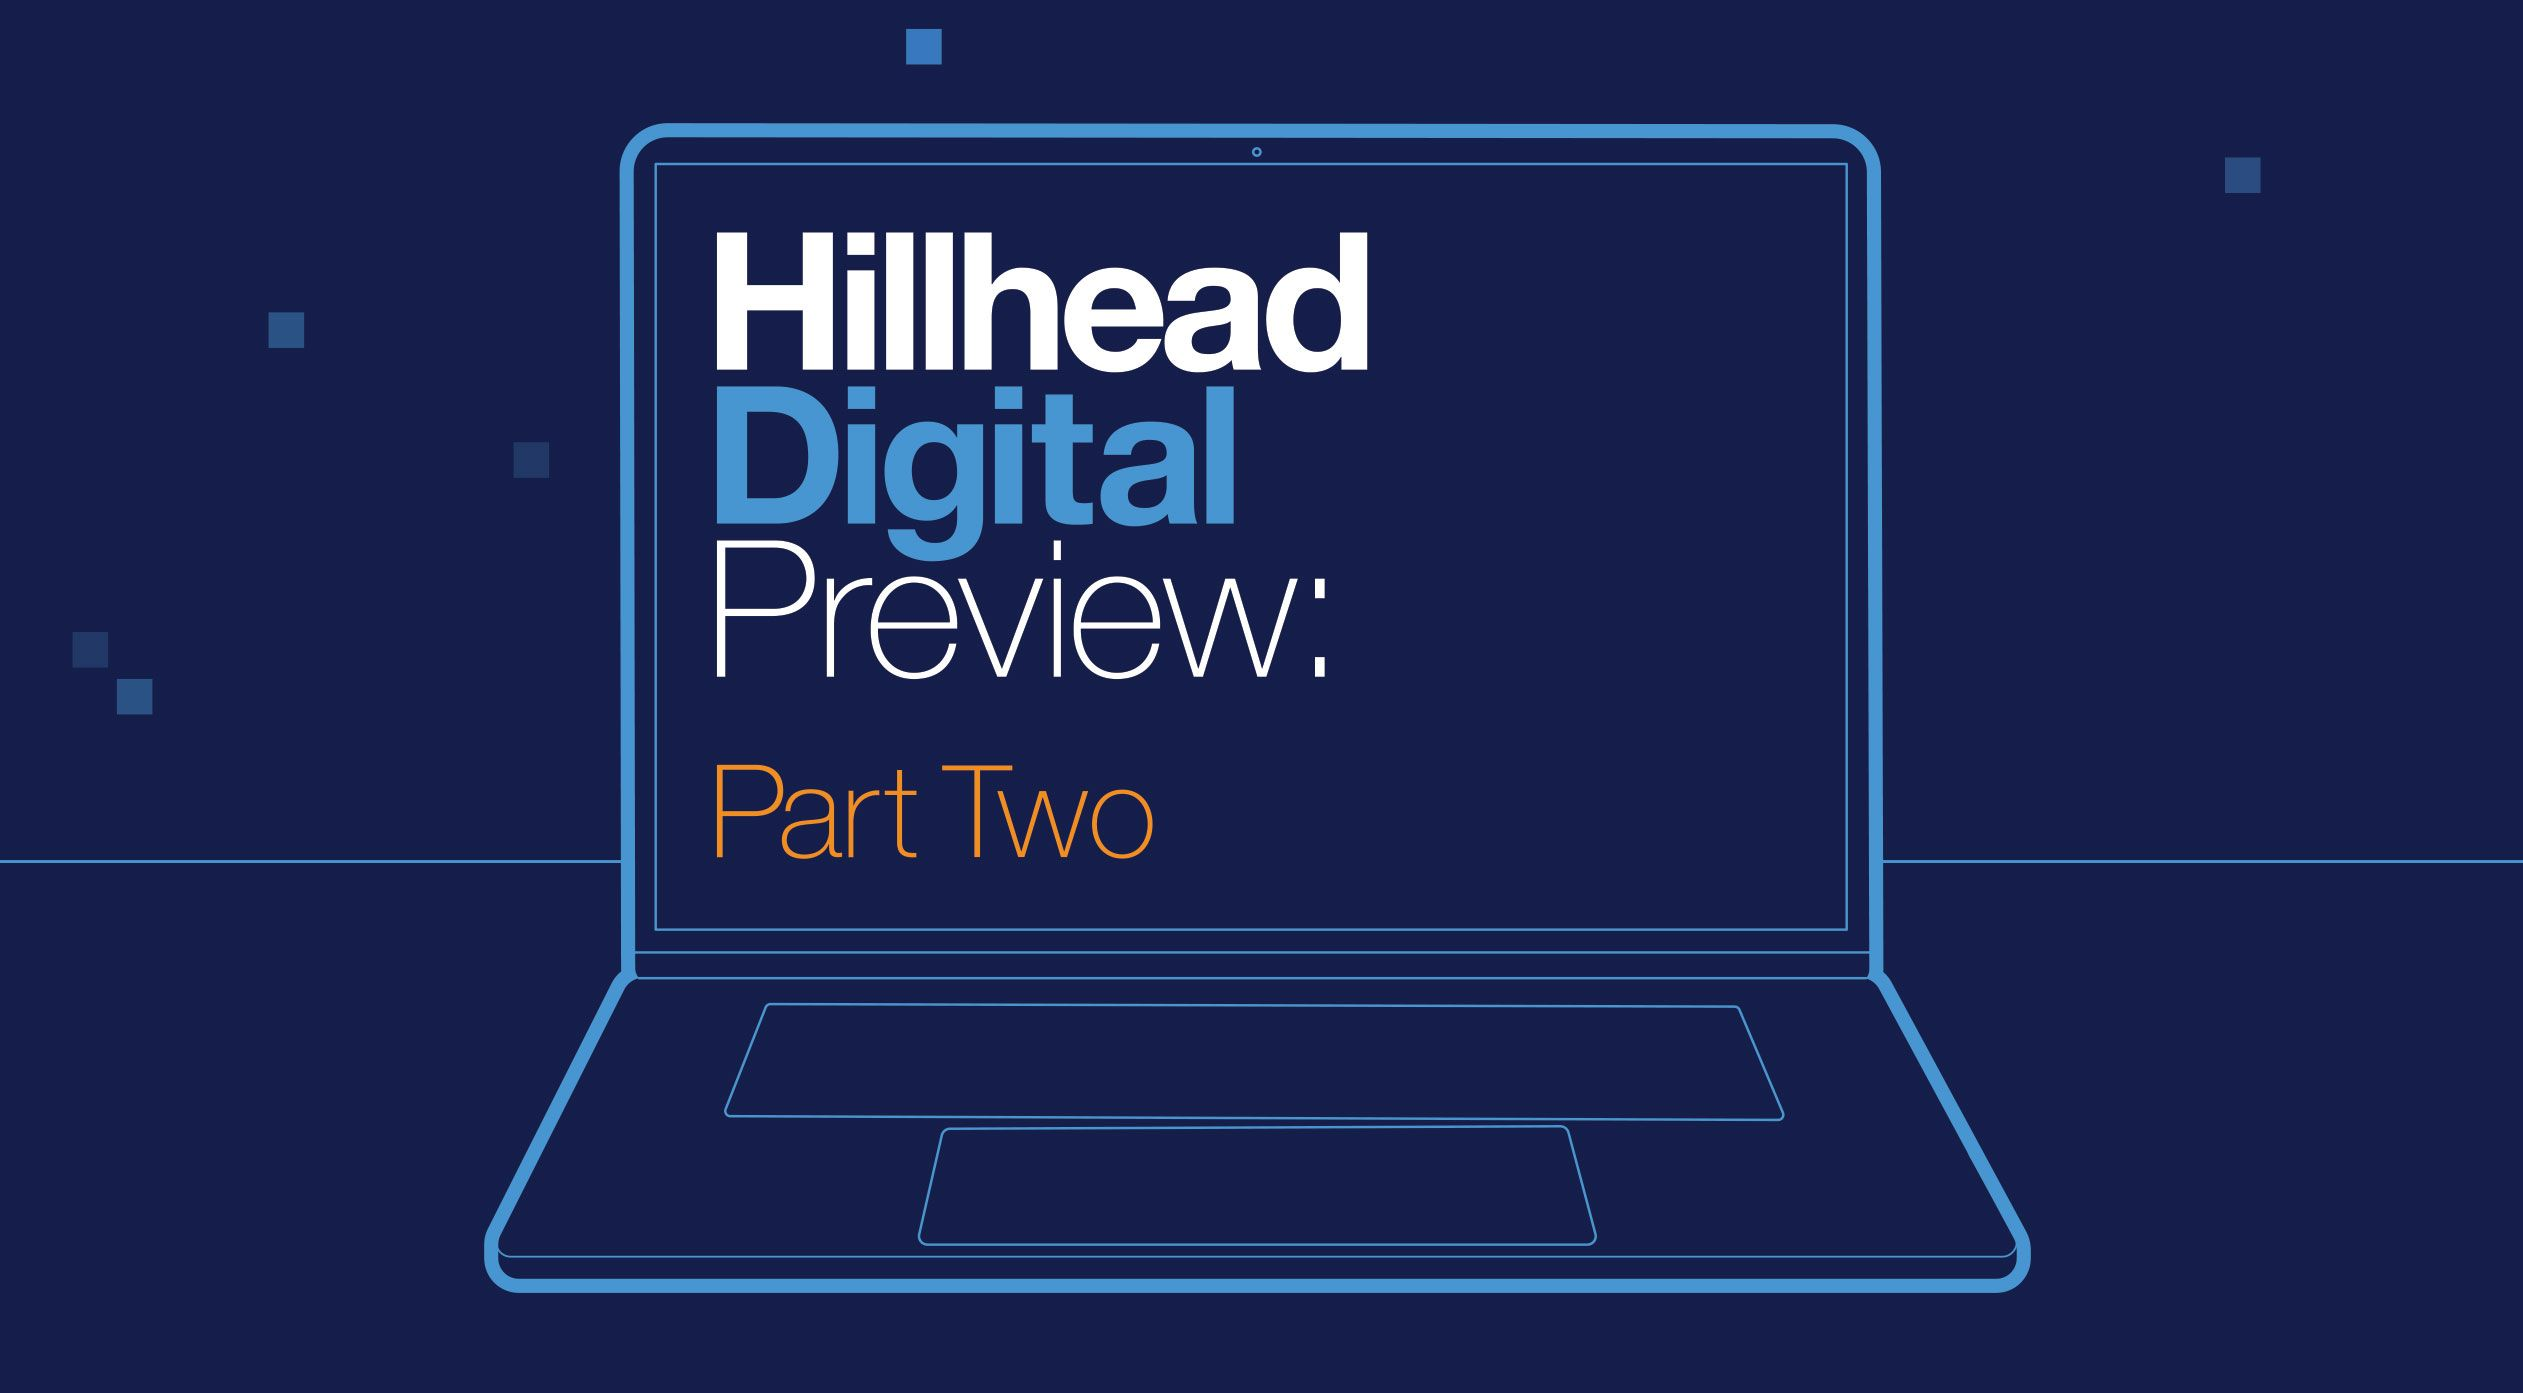 Hillhead Digital Preview Part Two